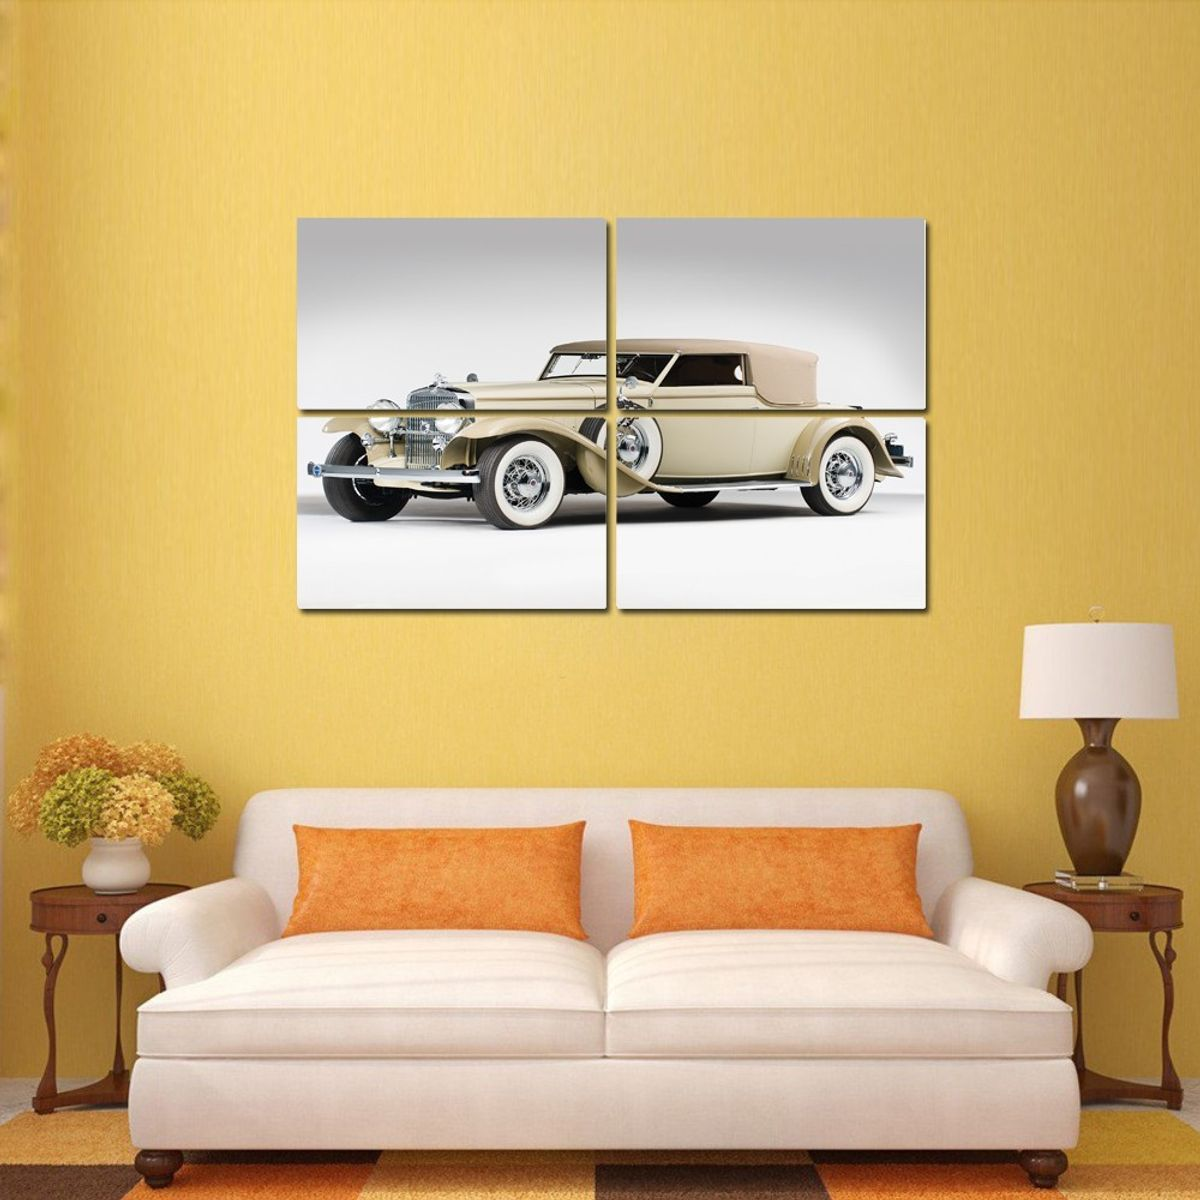 Buy CAR 4 Panel Wall Art Painting With UV at Lowest Price ...